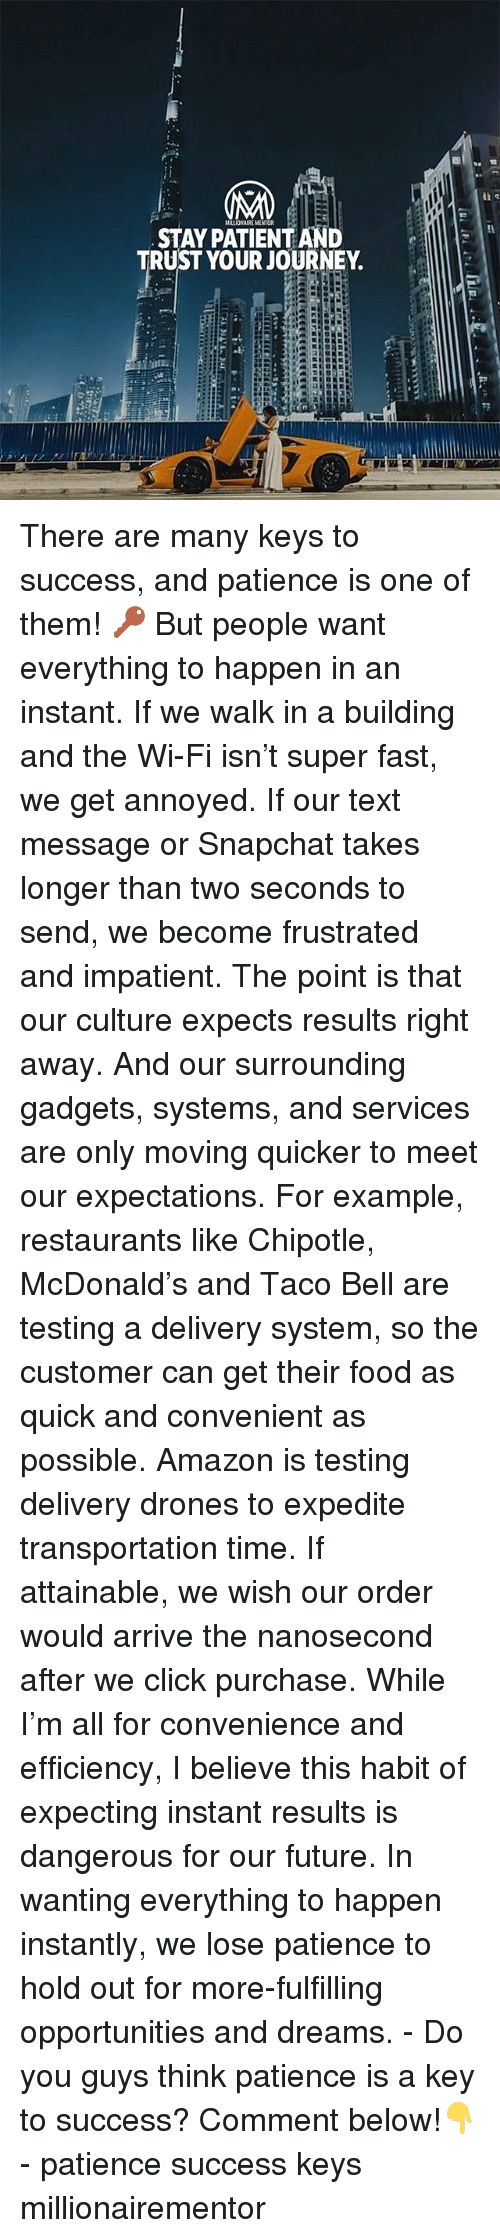 Amazon, Chipotle, and Click: MILLIONAIRE MENTOR  STAY PATIENT AND  TRUST YOUR JOURNEY There are many keys to success, and patience is one of them! 🔑 But people want everything to happen in an instant. If we walk in a building and the Wi-Fi isn't super fast, we get annoyed. If our text message or Snapchat takes longer than two seconds to send, we become frustrated and impatient. The point is that our culture expects results right away. And our surrounding gadgets, systems, and services are only moving quicker to meet our expectations. For example, restaurants like Chipotle, McDonald's and Taco Bell are testing a delivery system, so the customer can get their food as quick and convenient as possible. Amazon is testing delivery drones to expedite transportation time. If attainable, we wish our order would arrive the nanosecond after we click purchase. While I'm all for convenience and efficiency, I believe this habit of expecting instant results is dangerous for our future. In wanting everything to happen instantly, we lose patience to hold out for more-fulfilling opportunities and dreams. - Do you guys think patience is a key to success? Comment below!👇 - patience success keys millionairementor